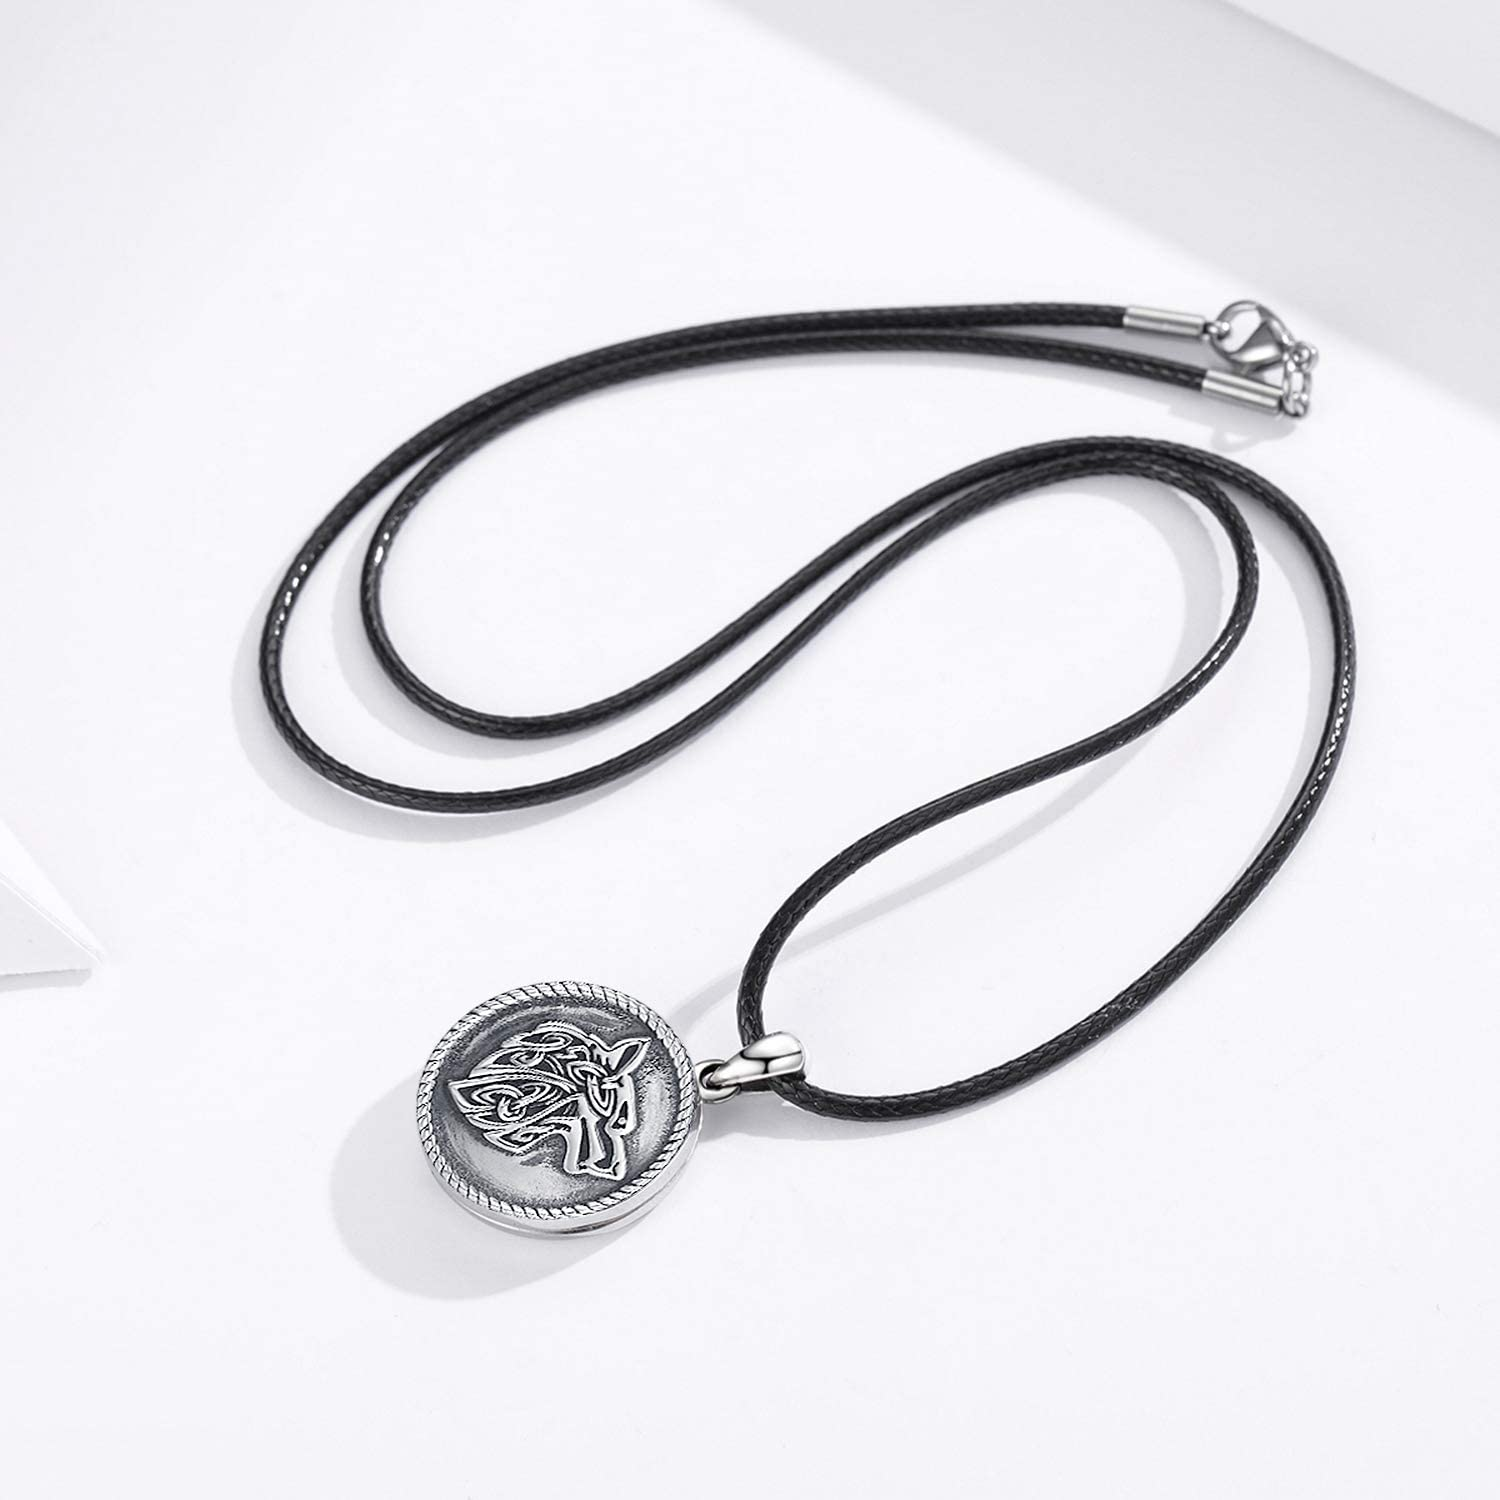 CHENGHONG Wolf Necklace Locket Necklace 925 Sterling Silver,Locket Necklace That Holds Pictures Vintage Oxidized Wolf Pendant for Women Viking Jewelry for Men